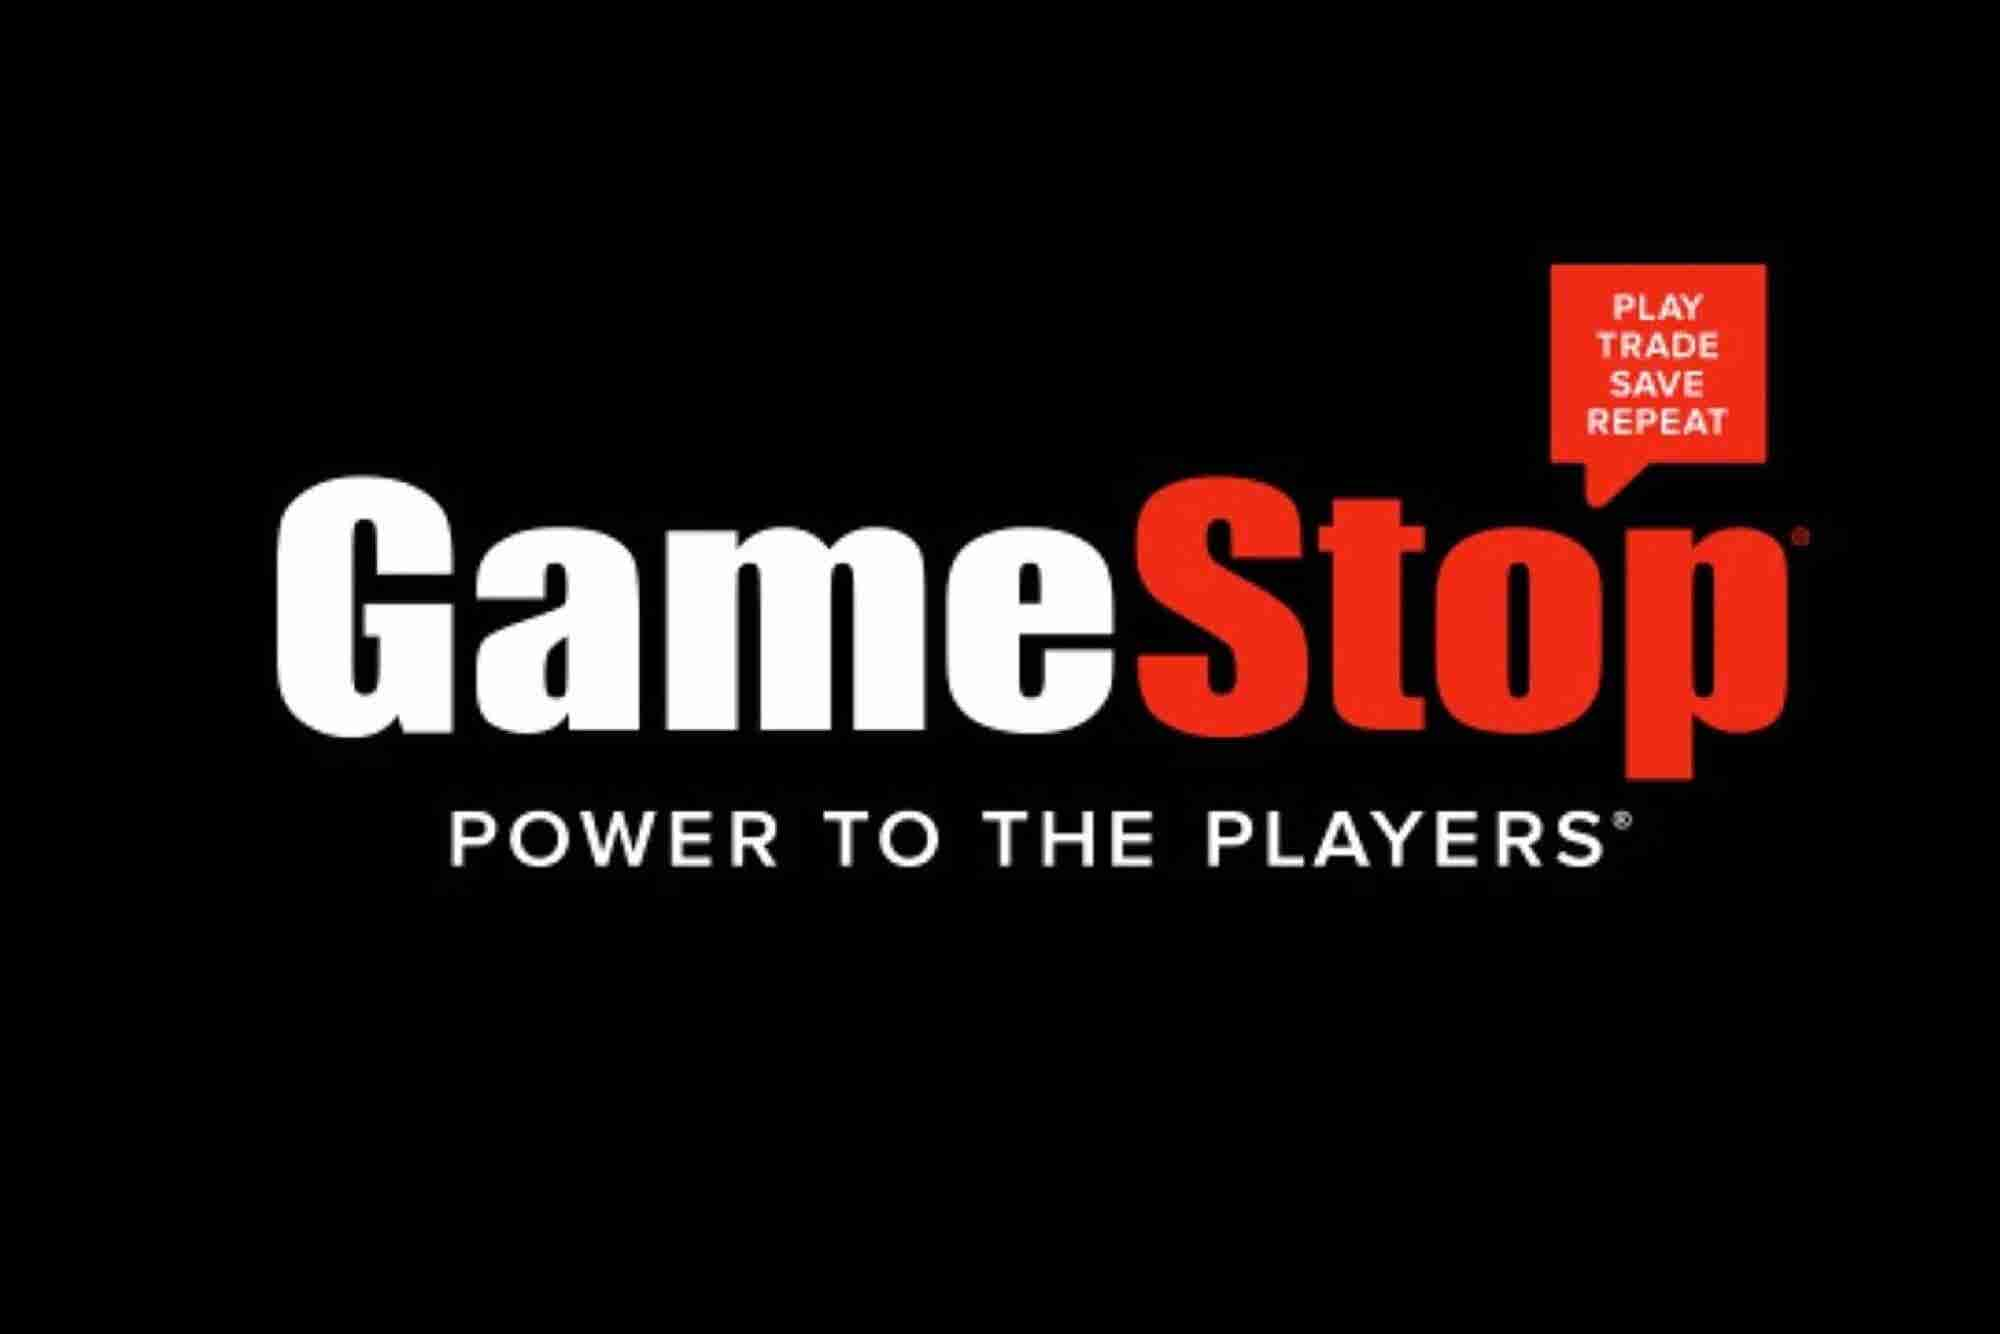 GameStop Sells (Another) Used Game Containing Bag of Meth